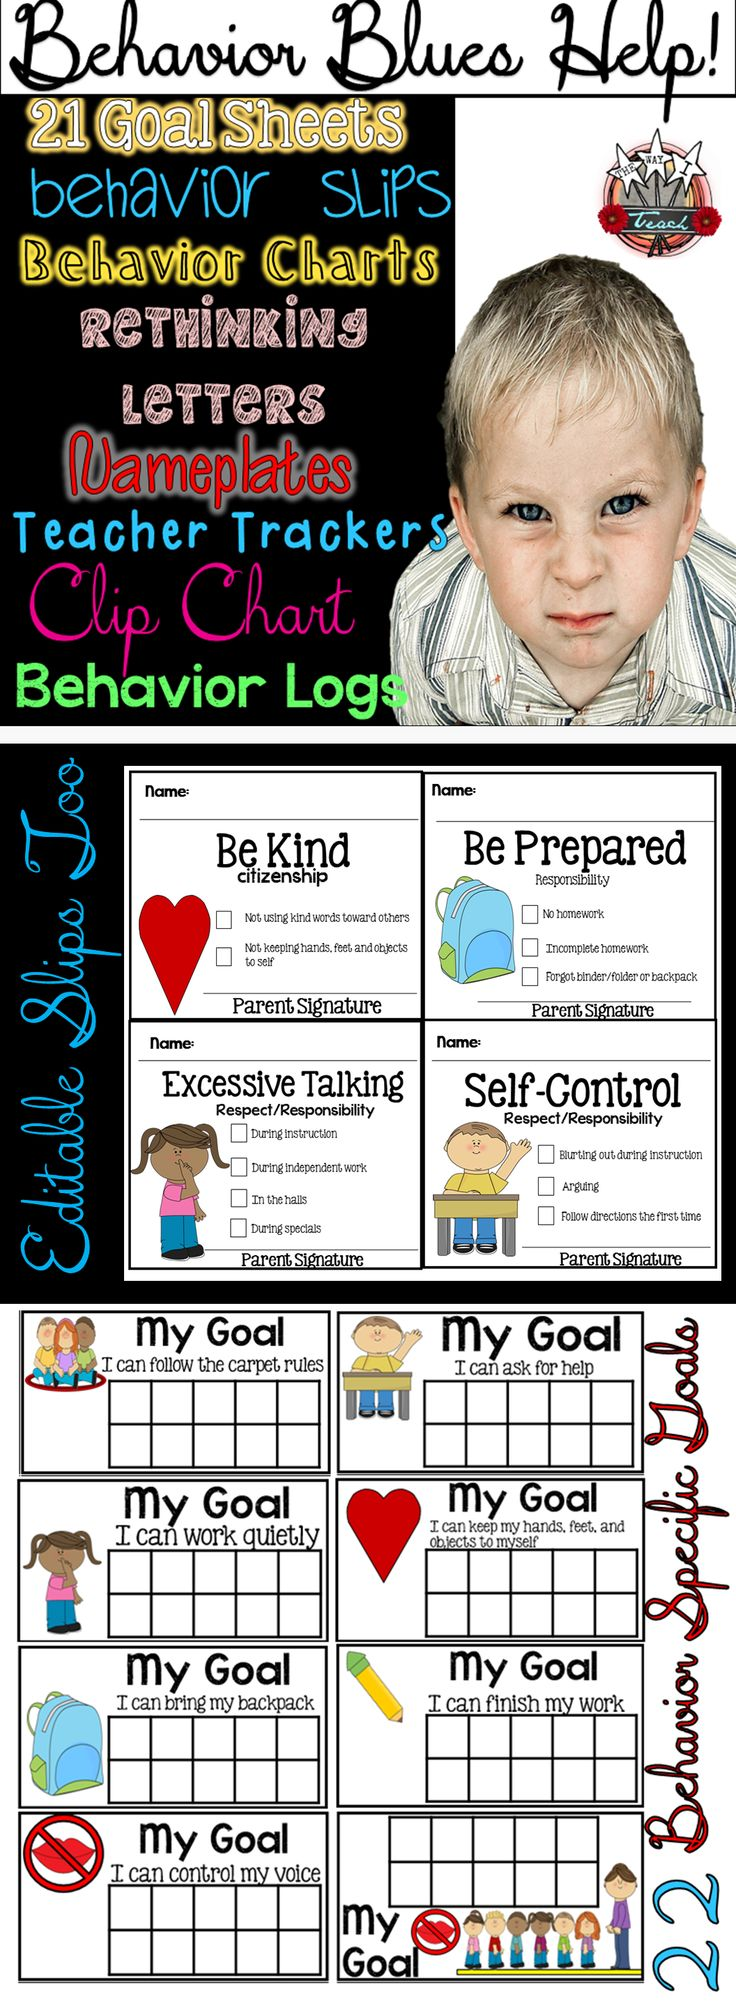 Classroom Management Behavior Tools: Charts, Forms, Slips, Rethinking Letters